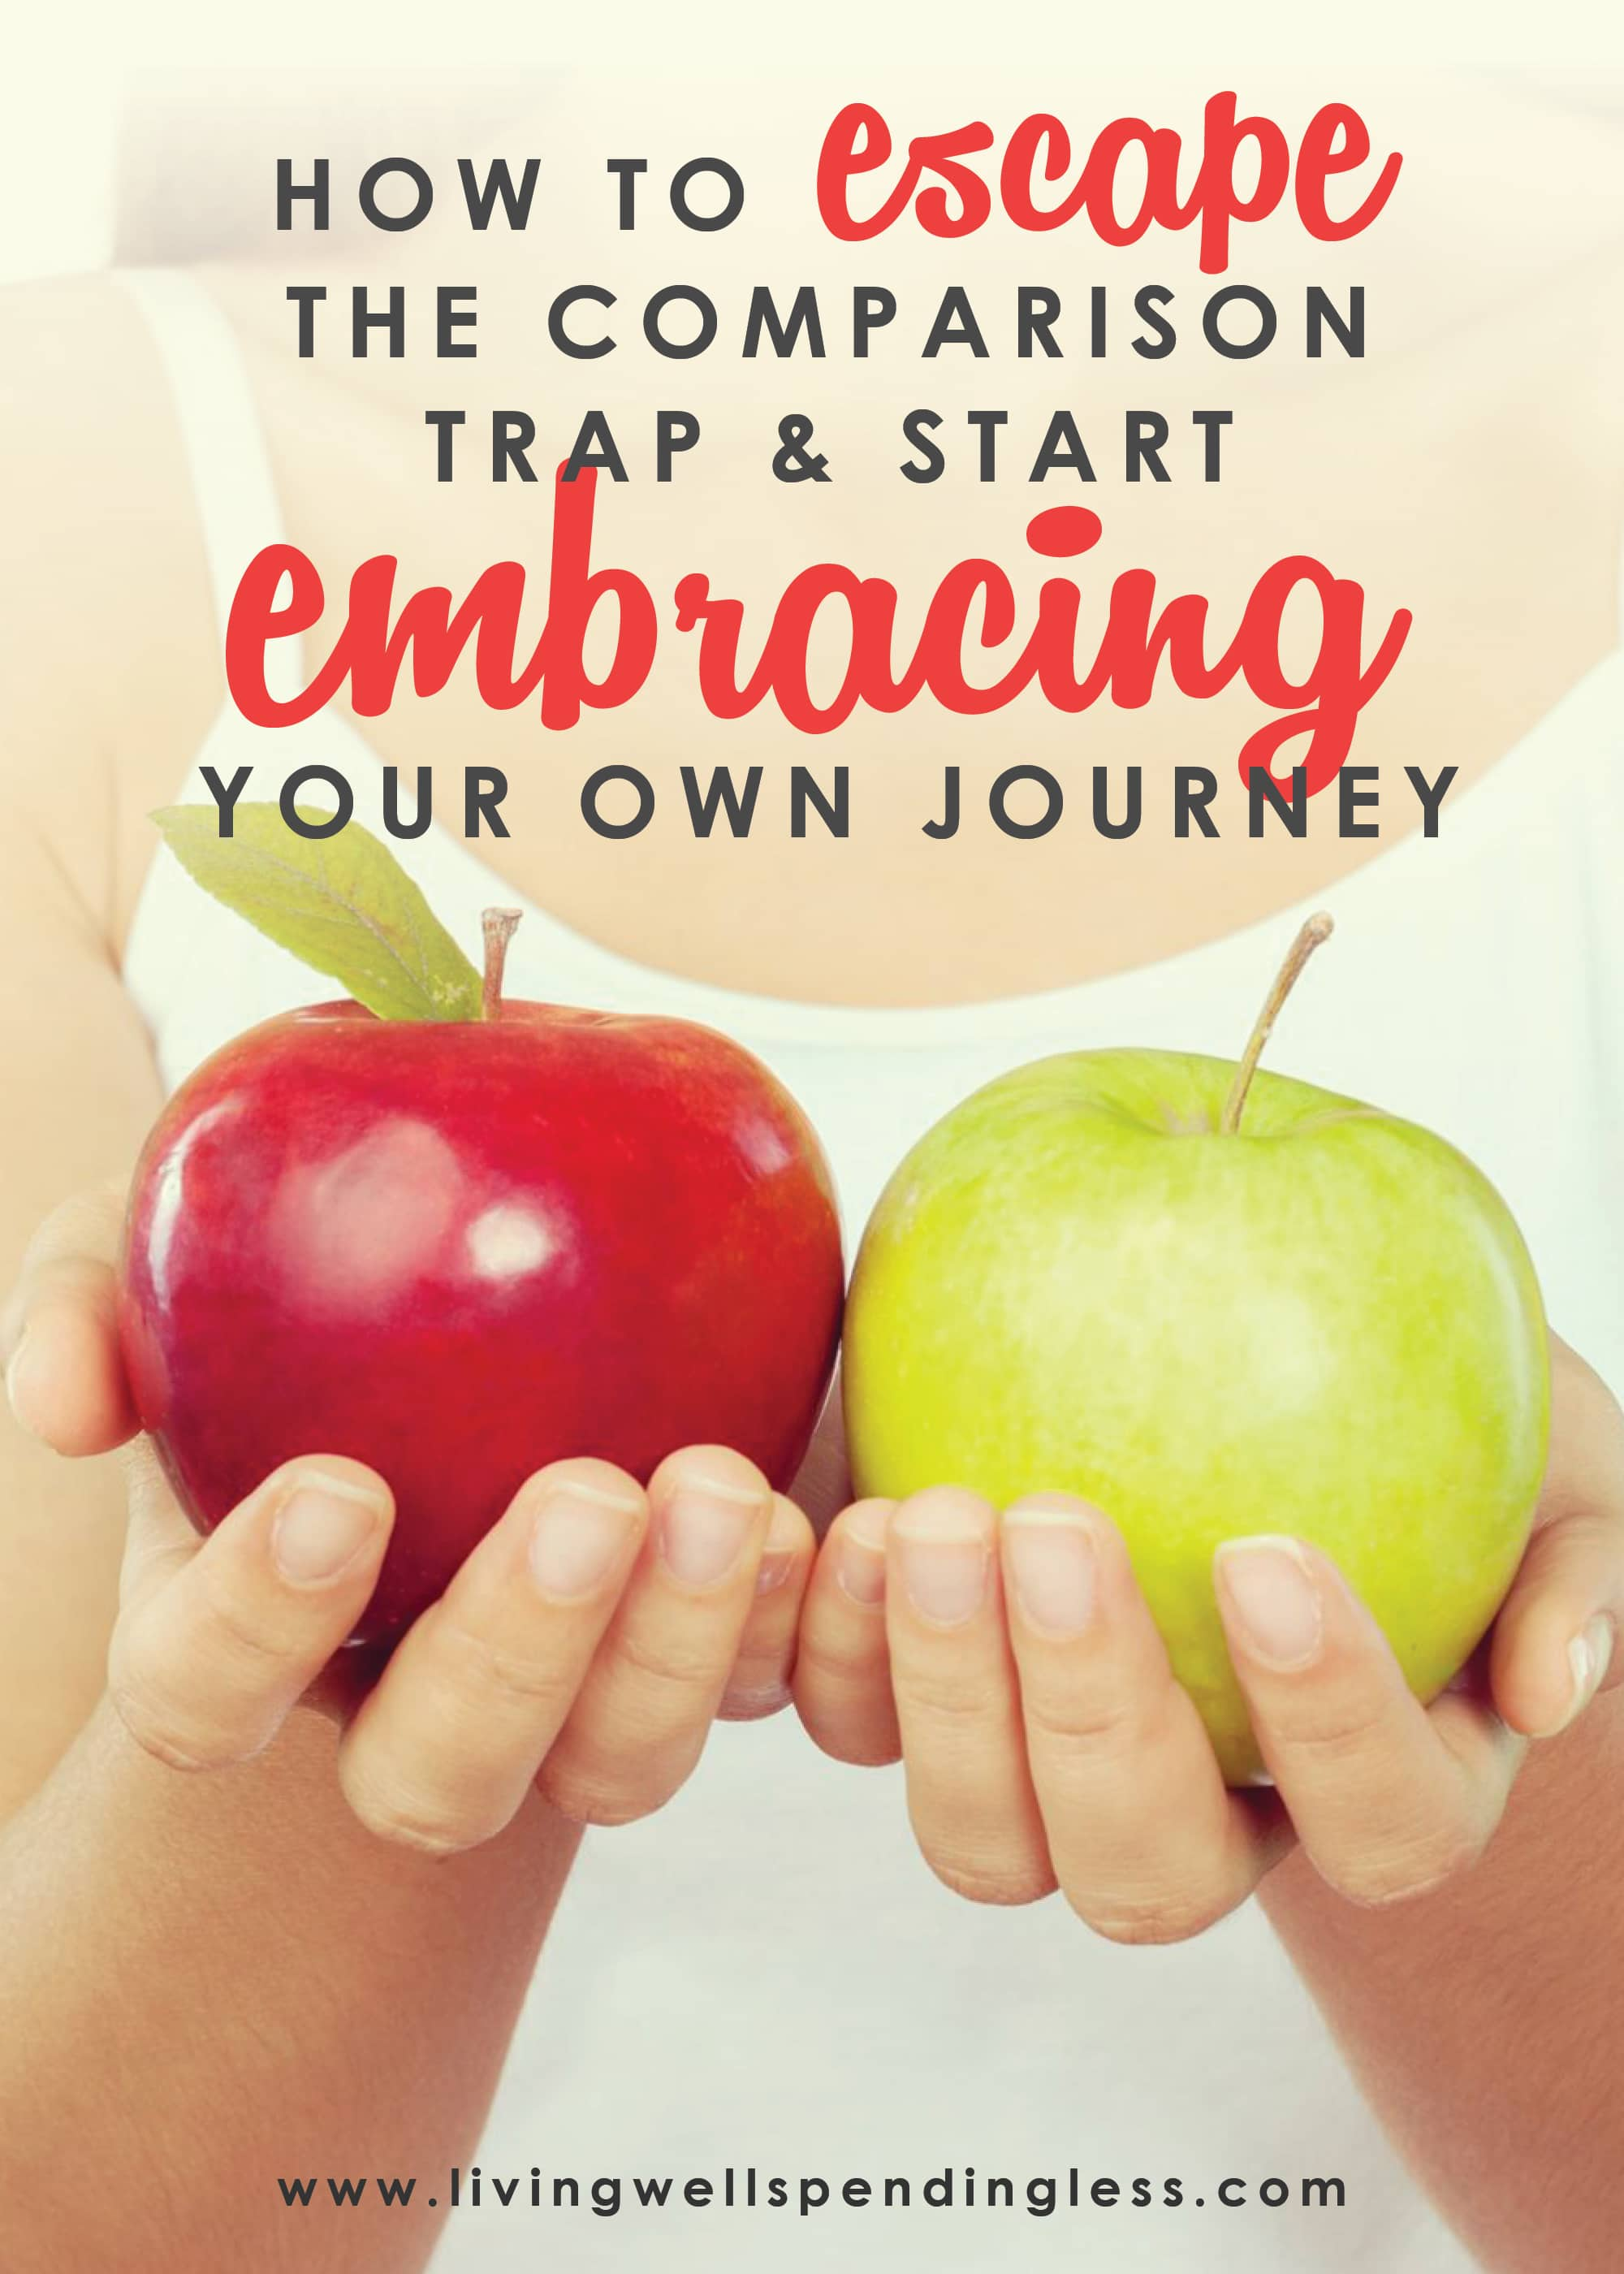 How to escape the comparison trap and start embracing your own journey.